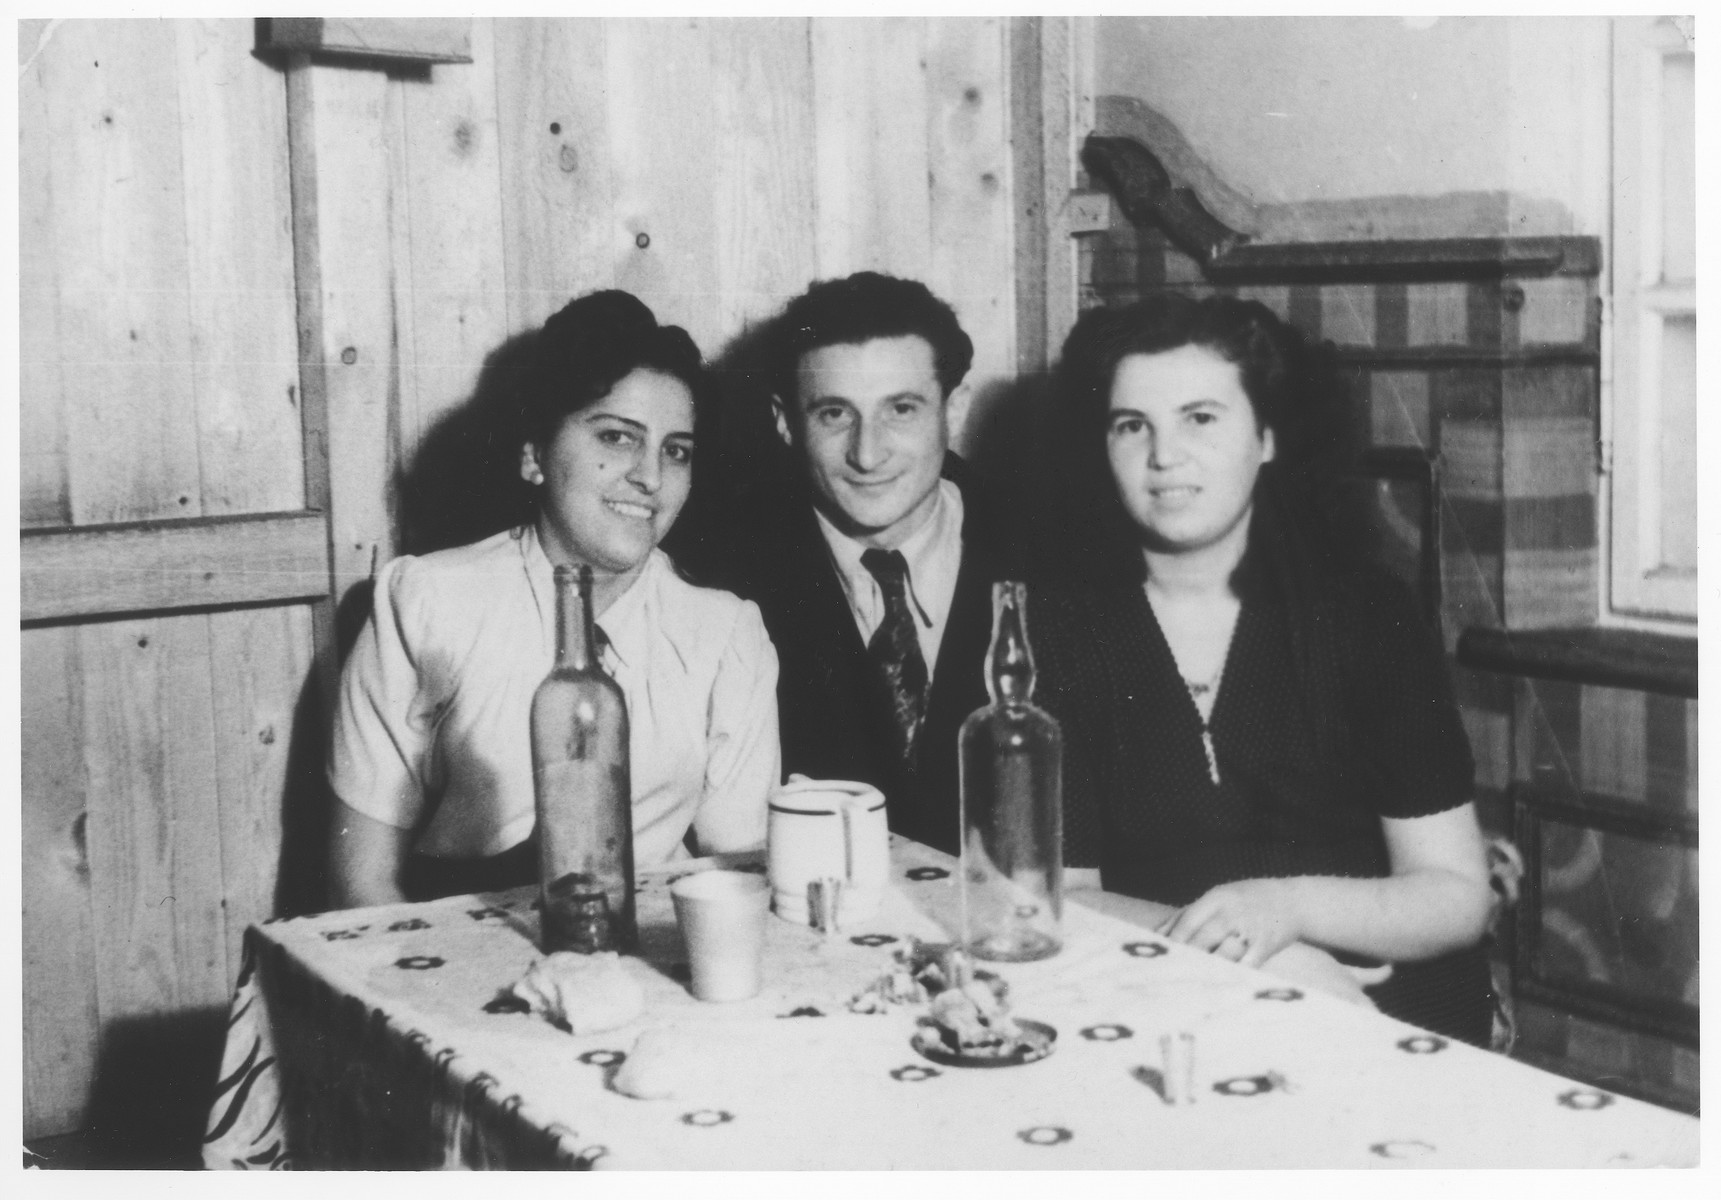 Zdenek Mermelstein sits with two young women in a room in the Gabersee displaced persons camp.